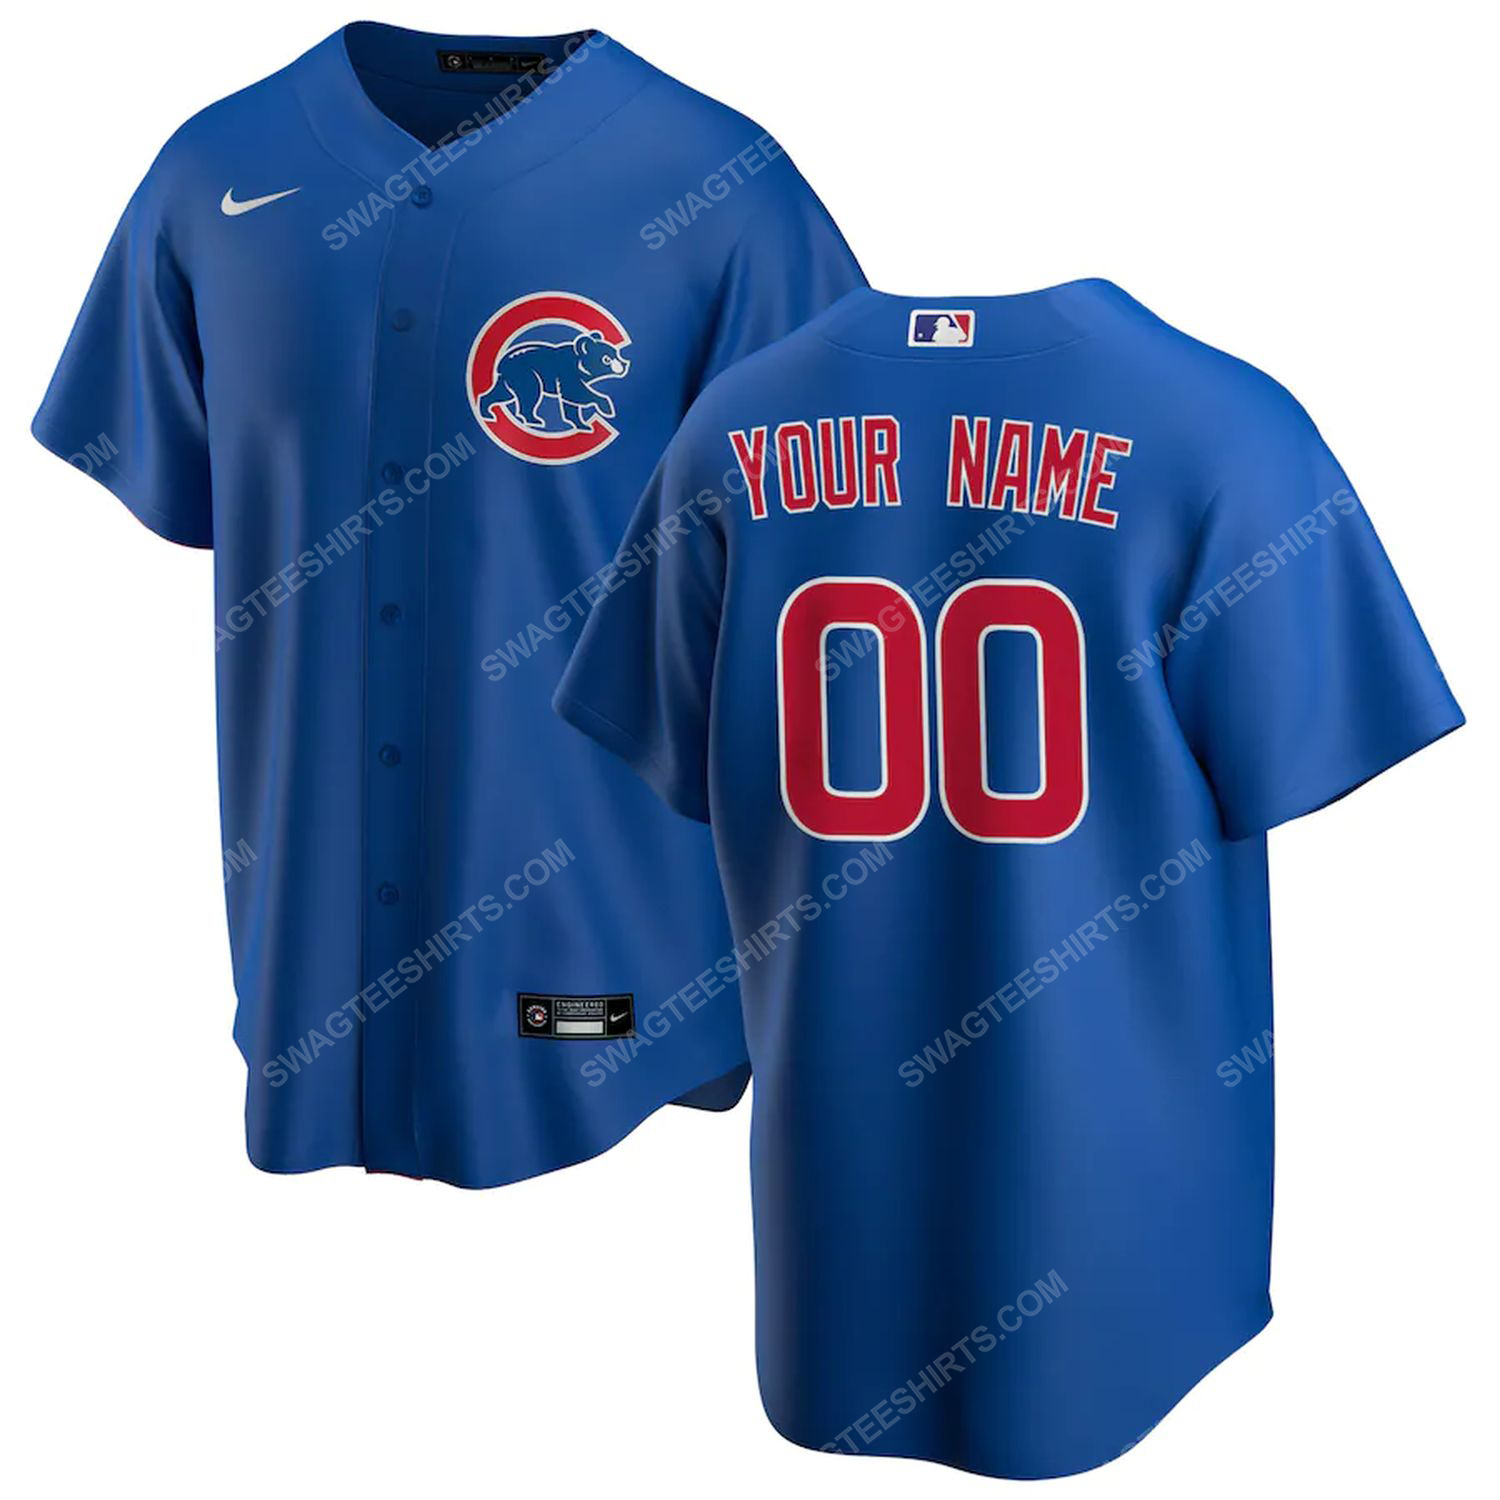 Personalized mlb chicago cubs baseball jersey-royal